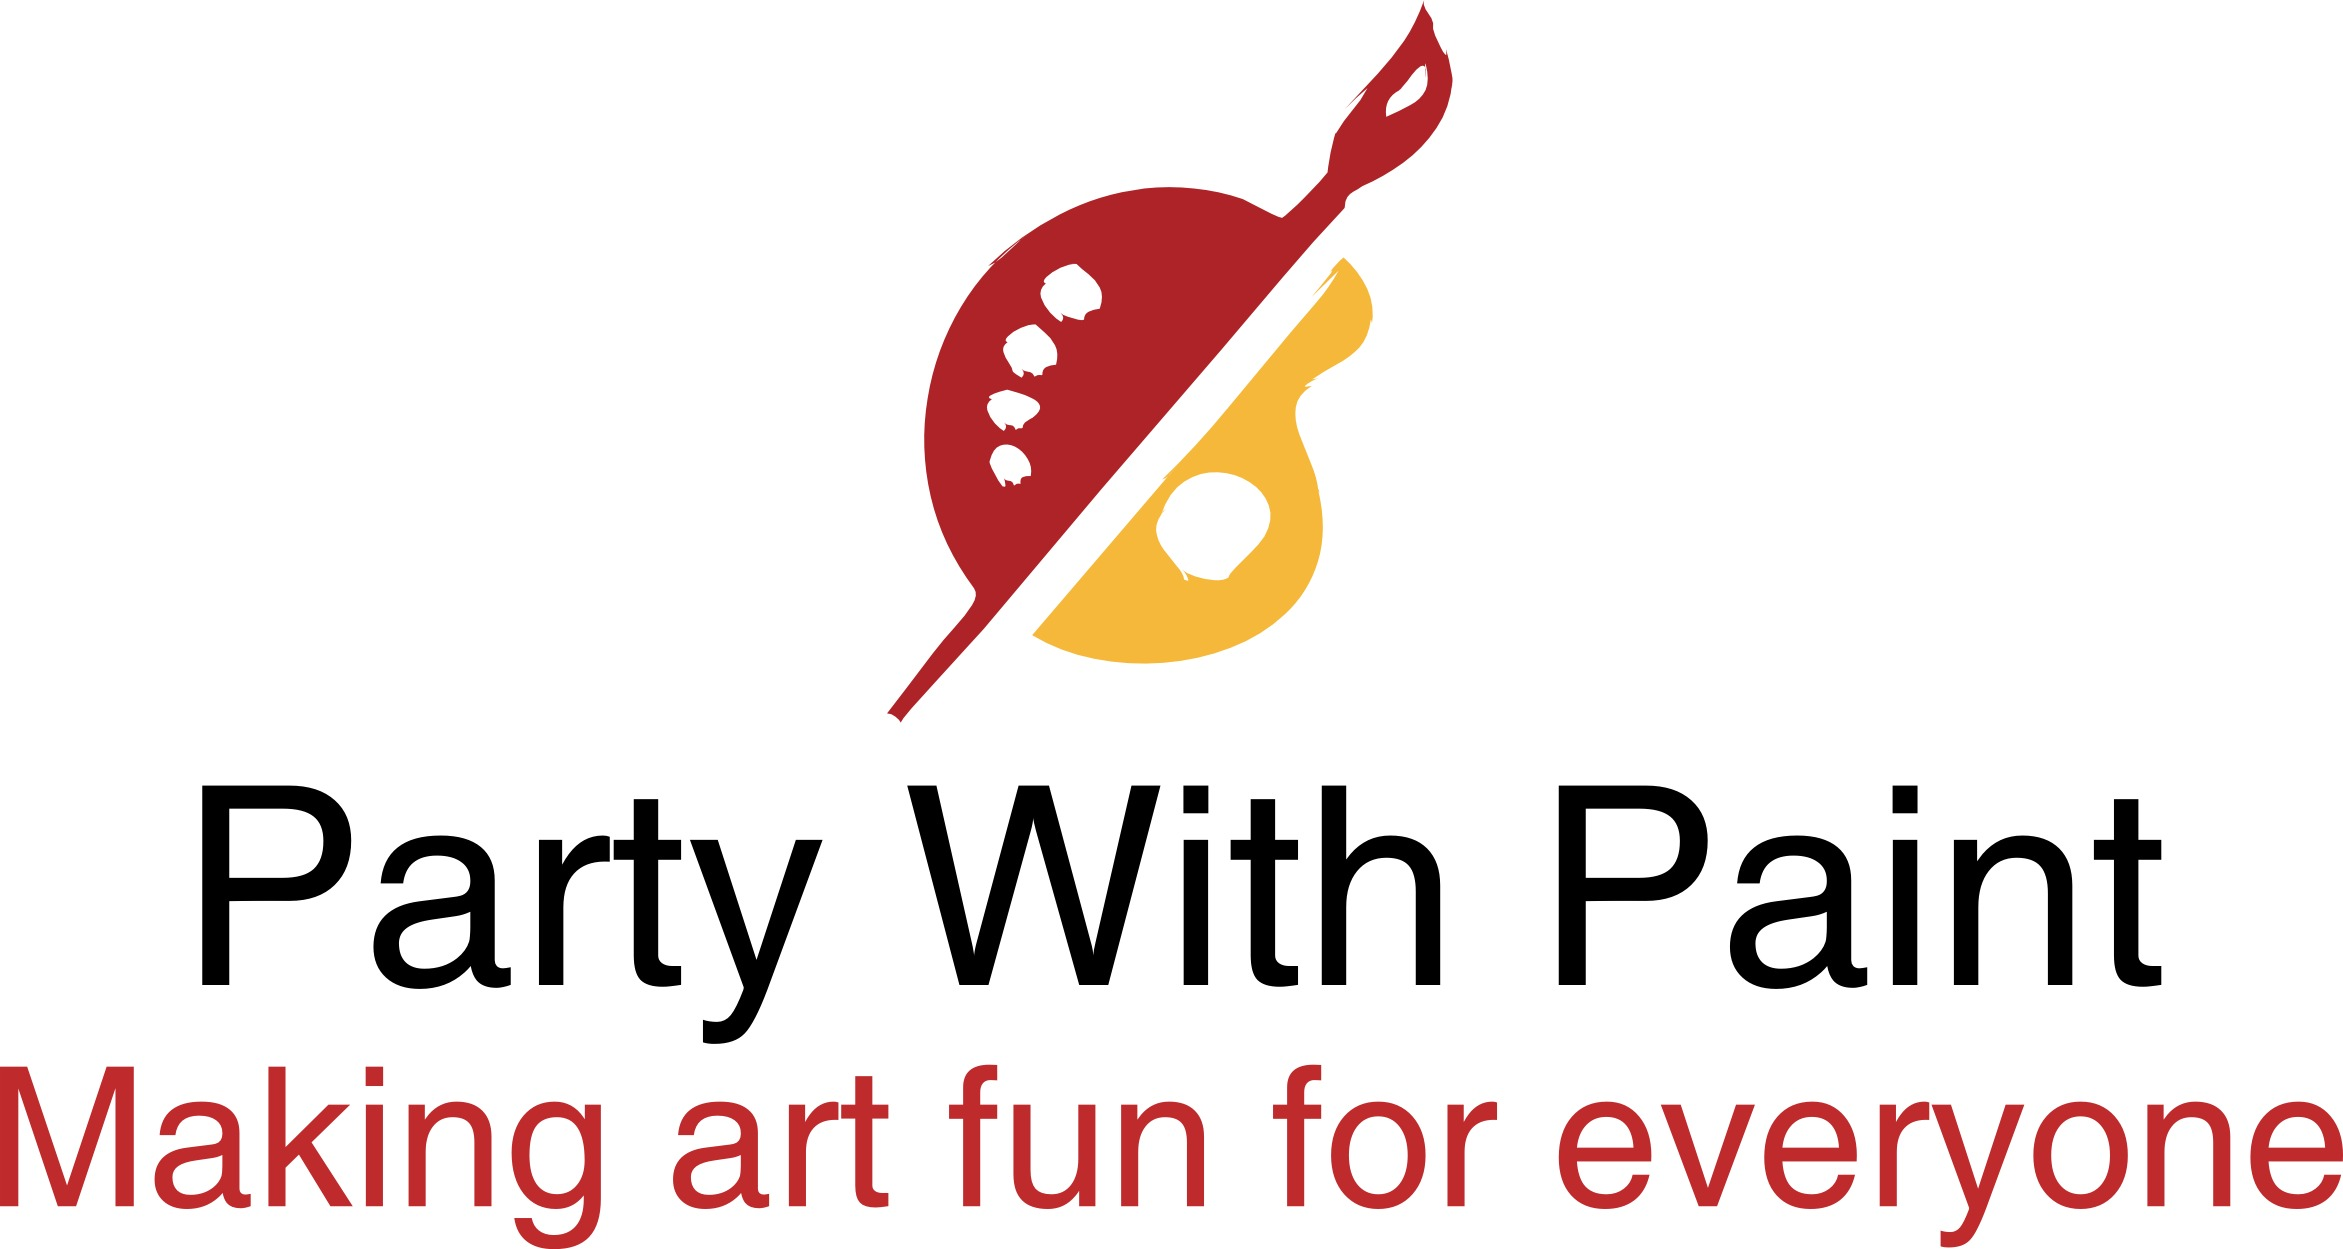 Party With Paint